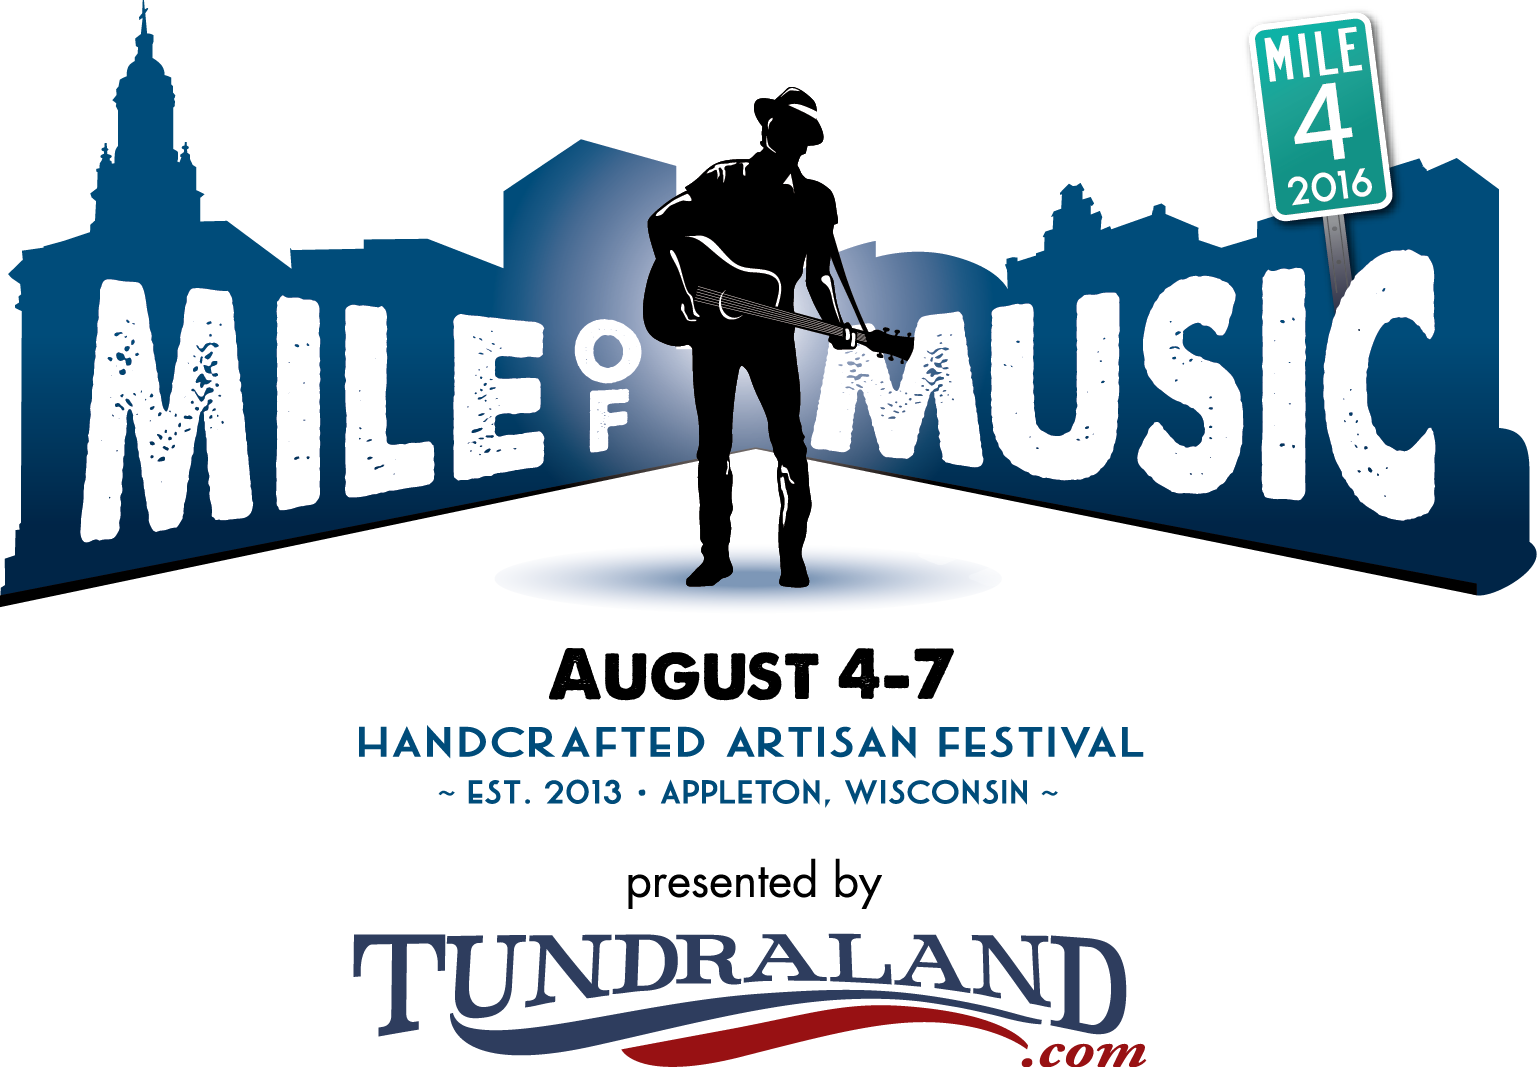 MMF Mile 4_full logo+dates_Tund_stacked